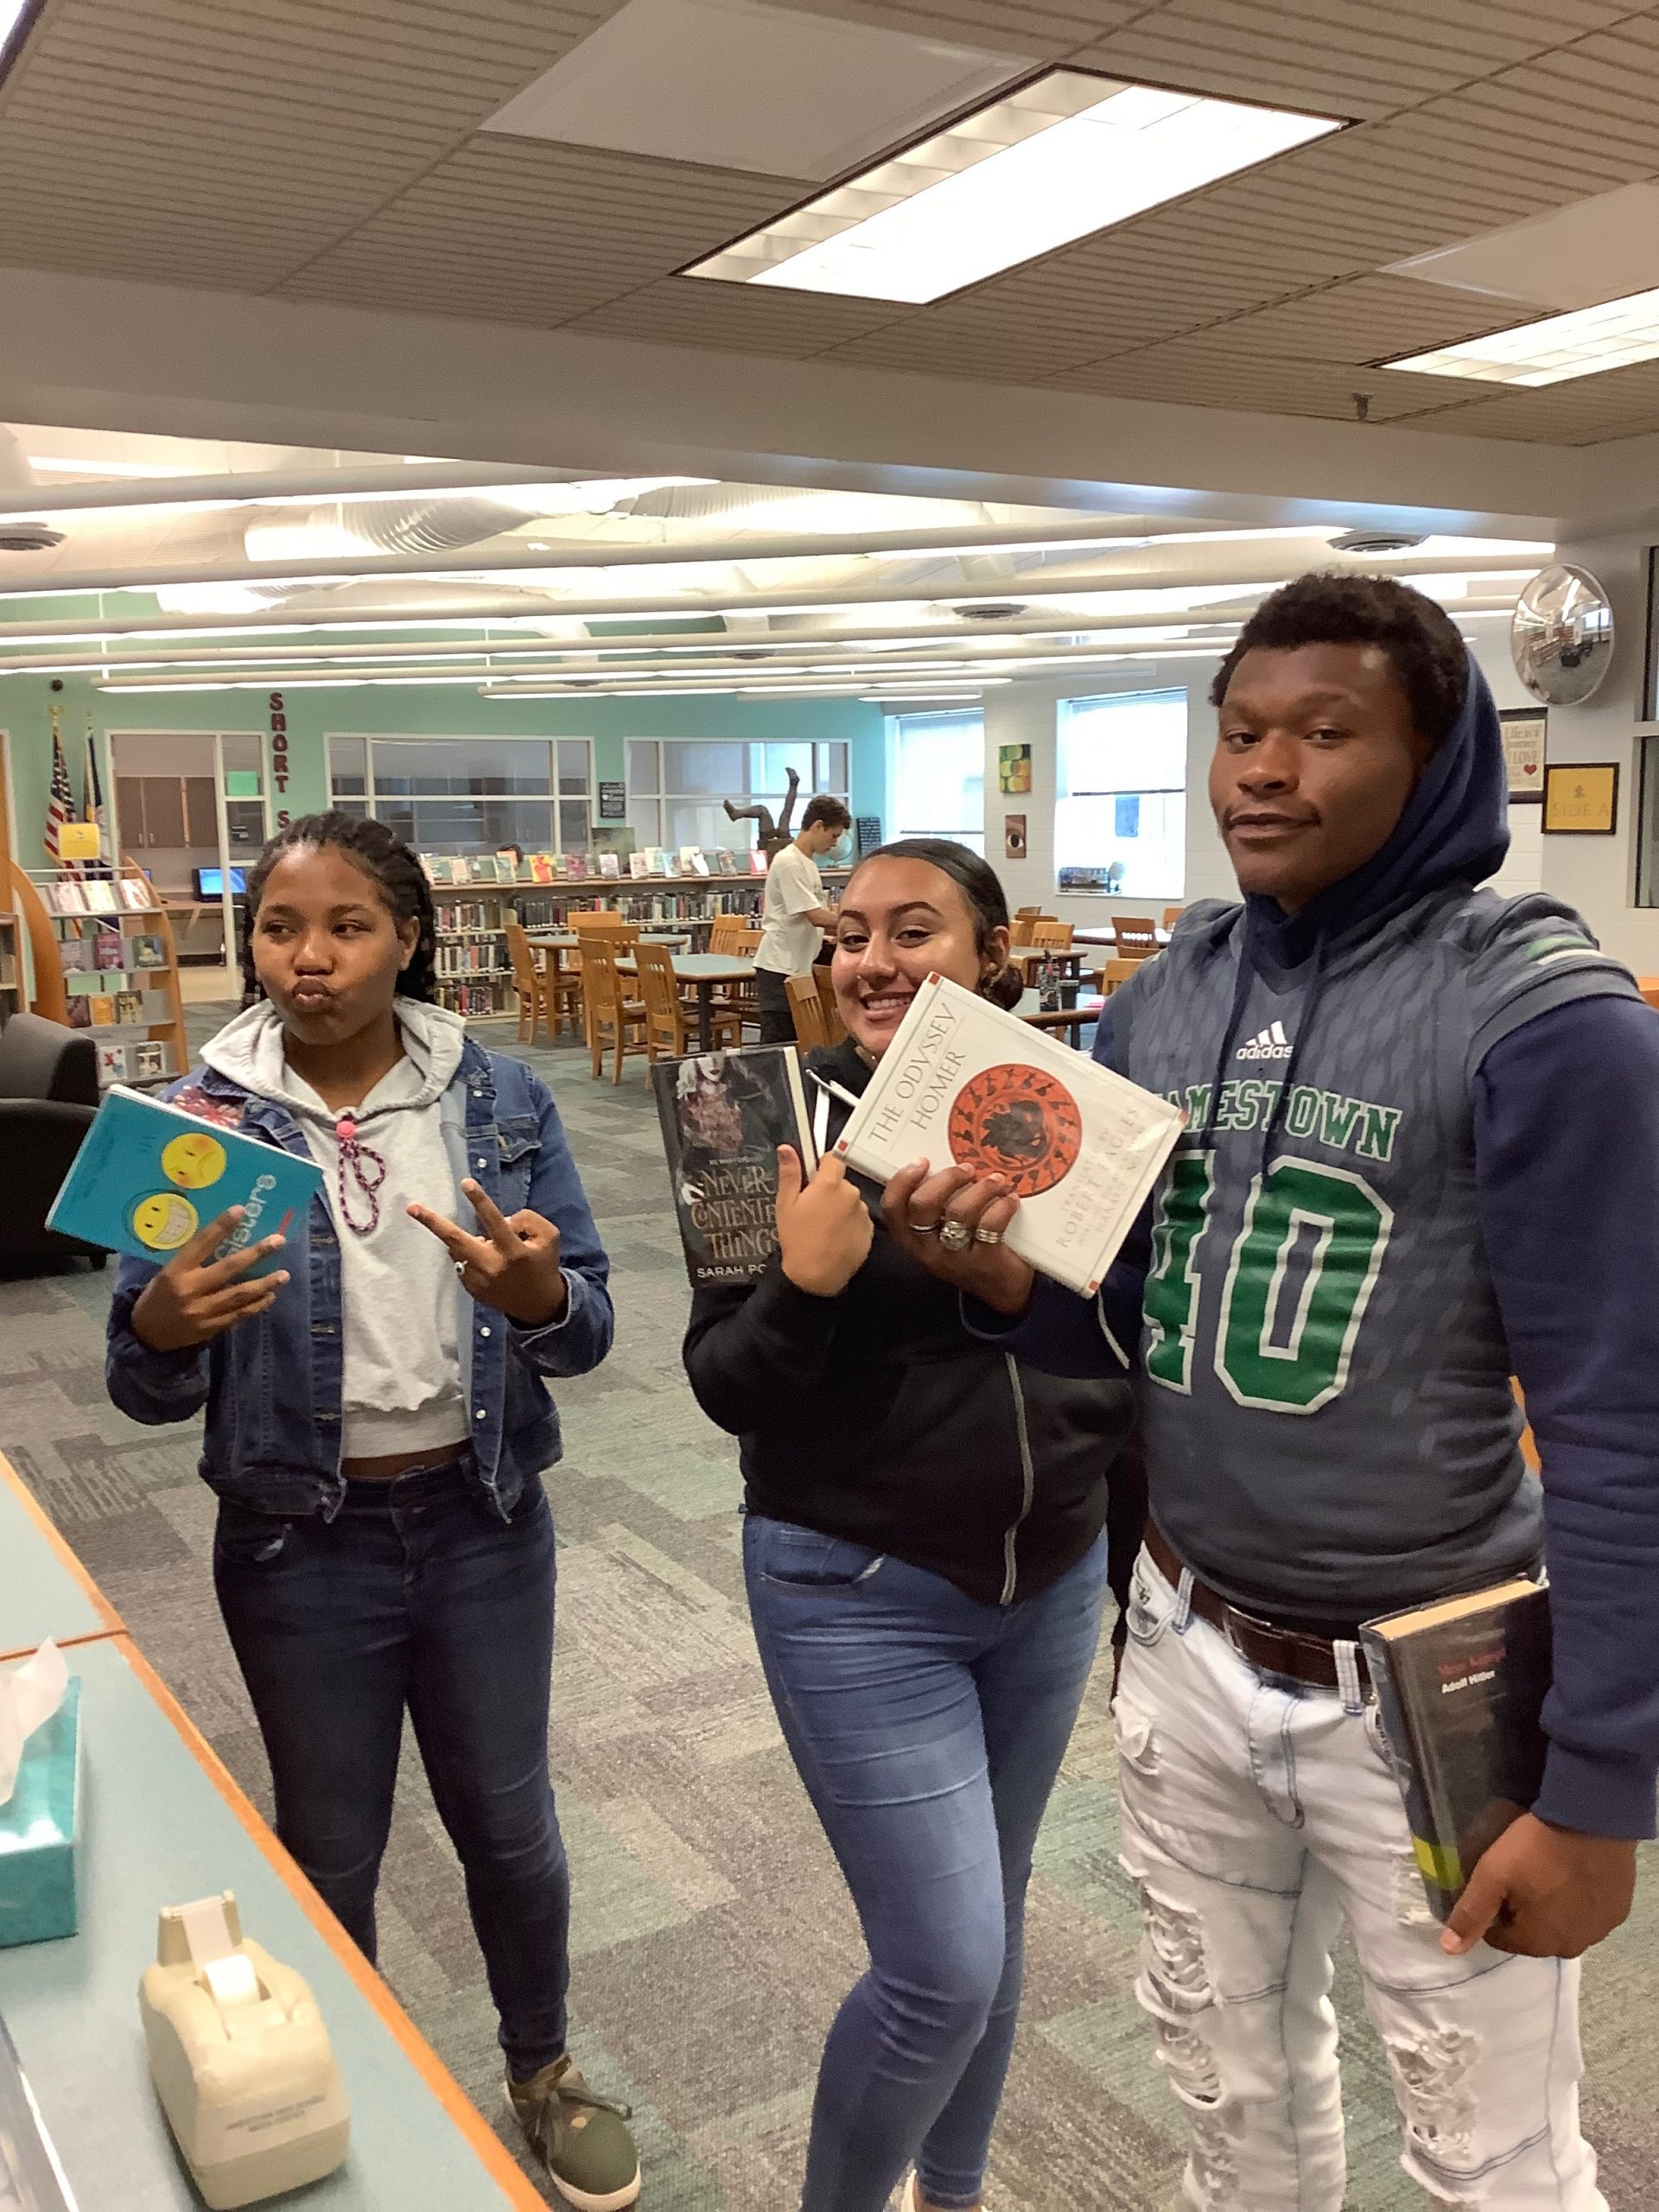 three students standing in the library showing their books and posing